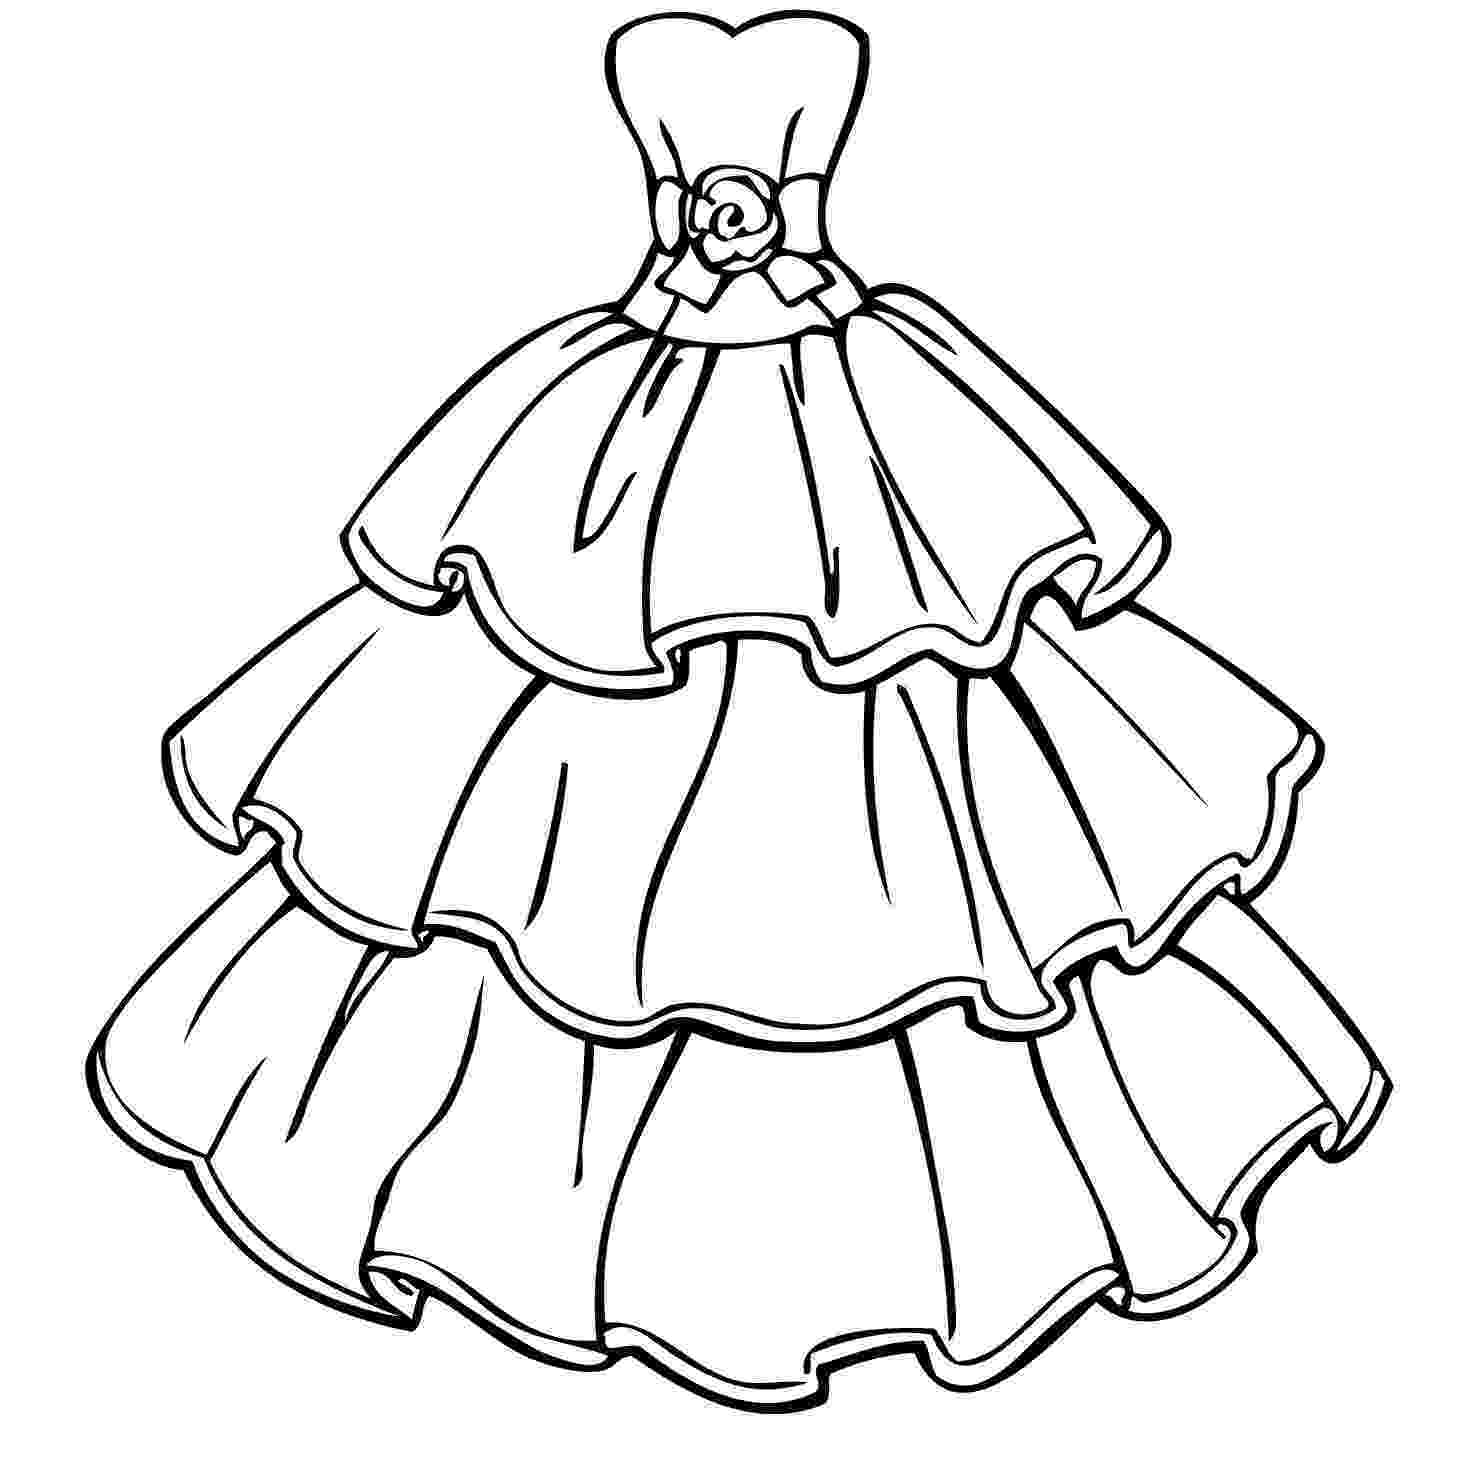 colouring clothes paper doll clothes clothes for young girl model clothes colouring